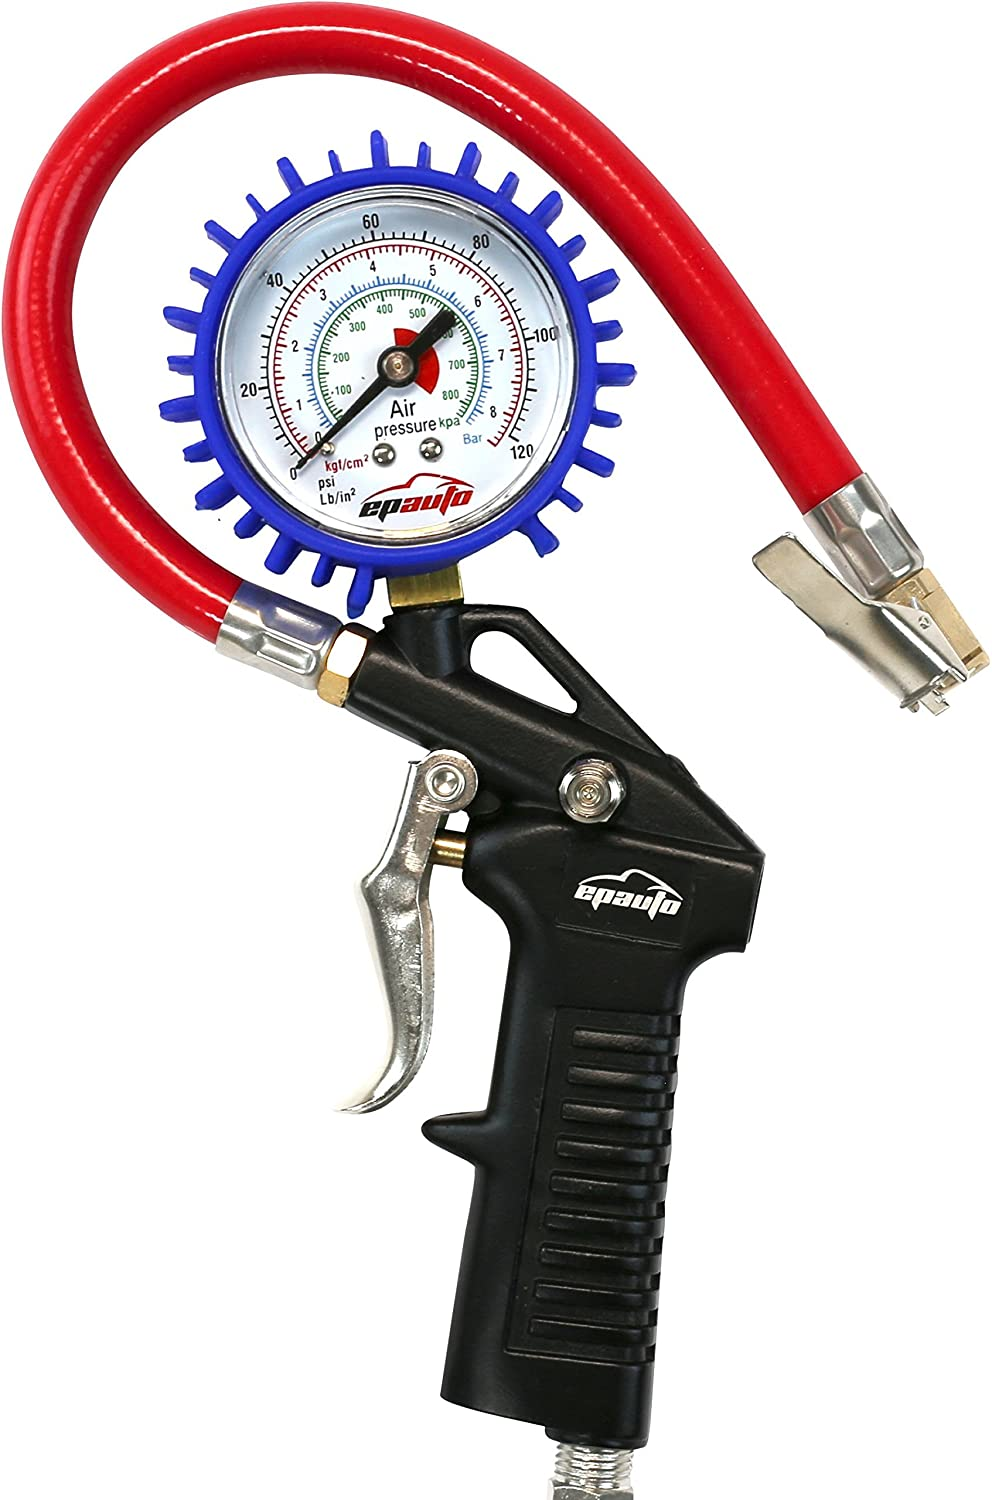 EPAuto Heavy Duty 120 PSI Tire Inflator Gauge with Hose and Quick Connect Plug AT-001-2